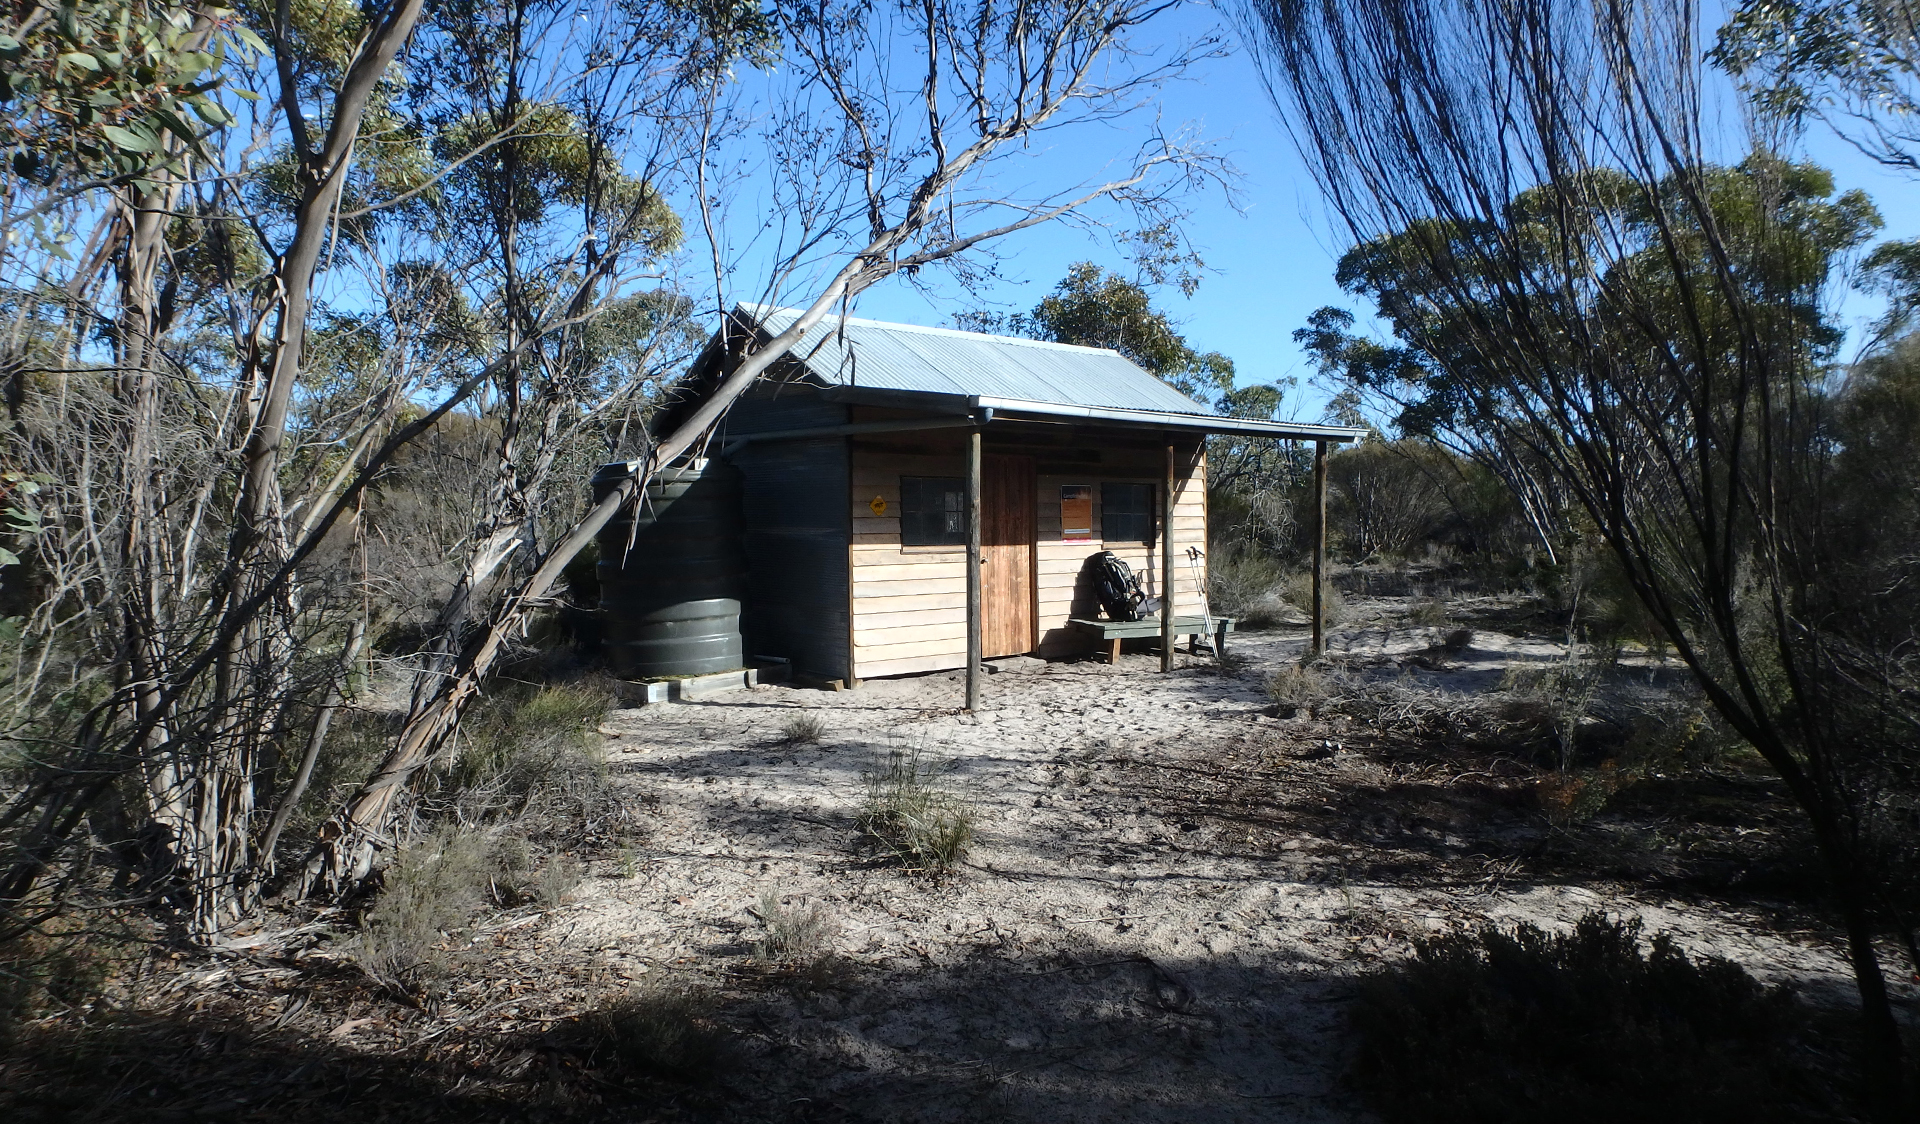 Mallee Walkers camp at Little Desert National Park